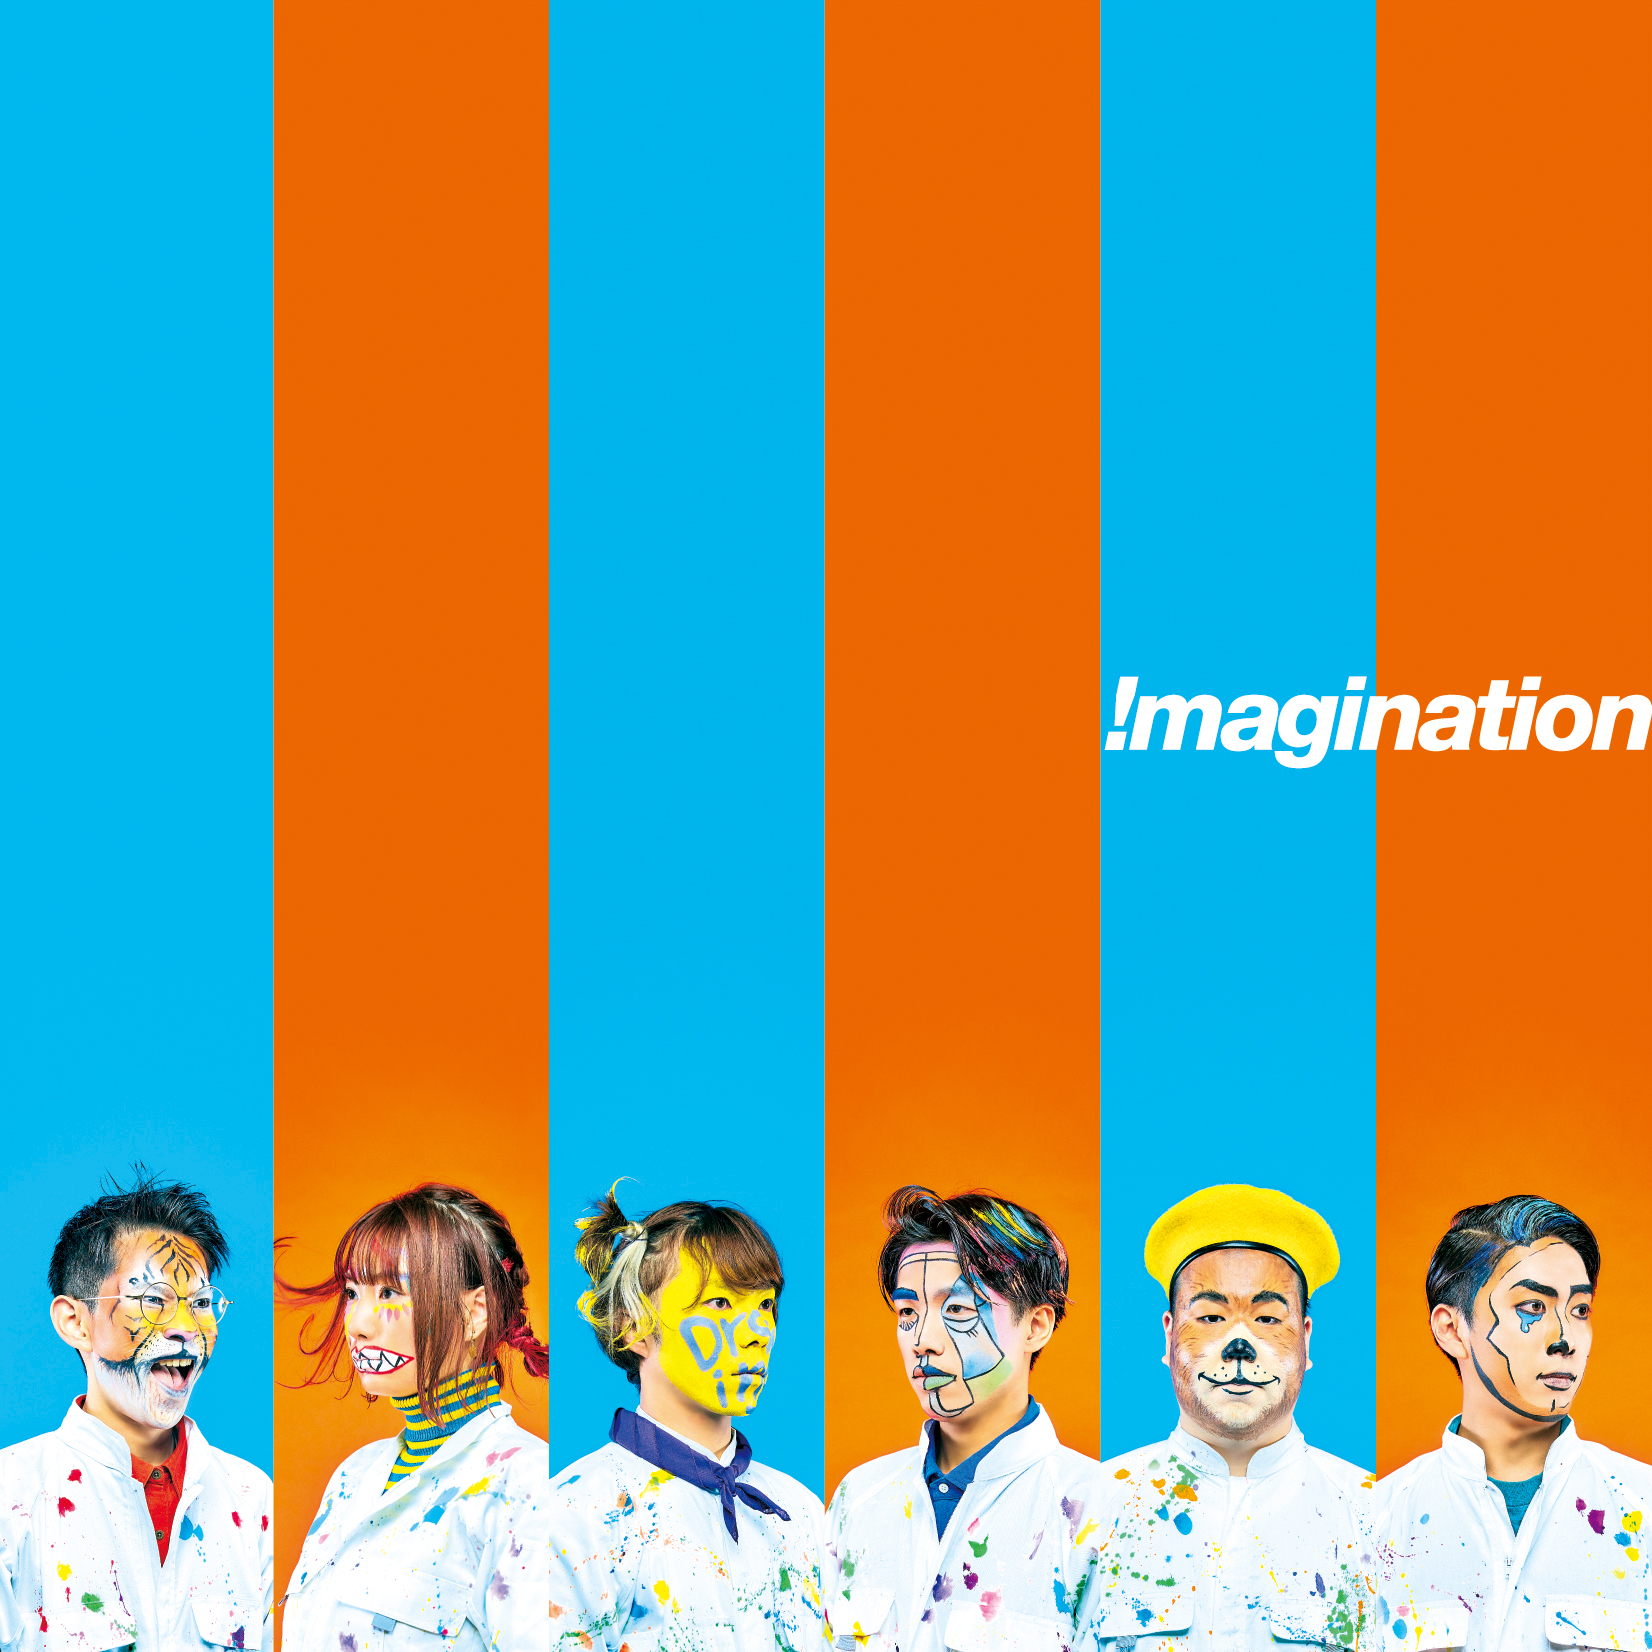 LUCKY KILIMANJARO「!magination」